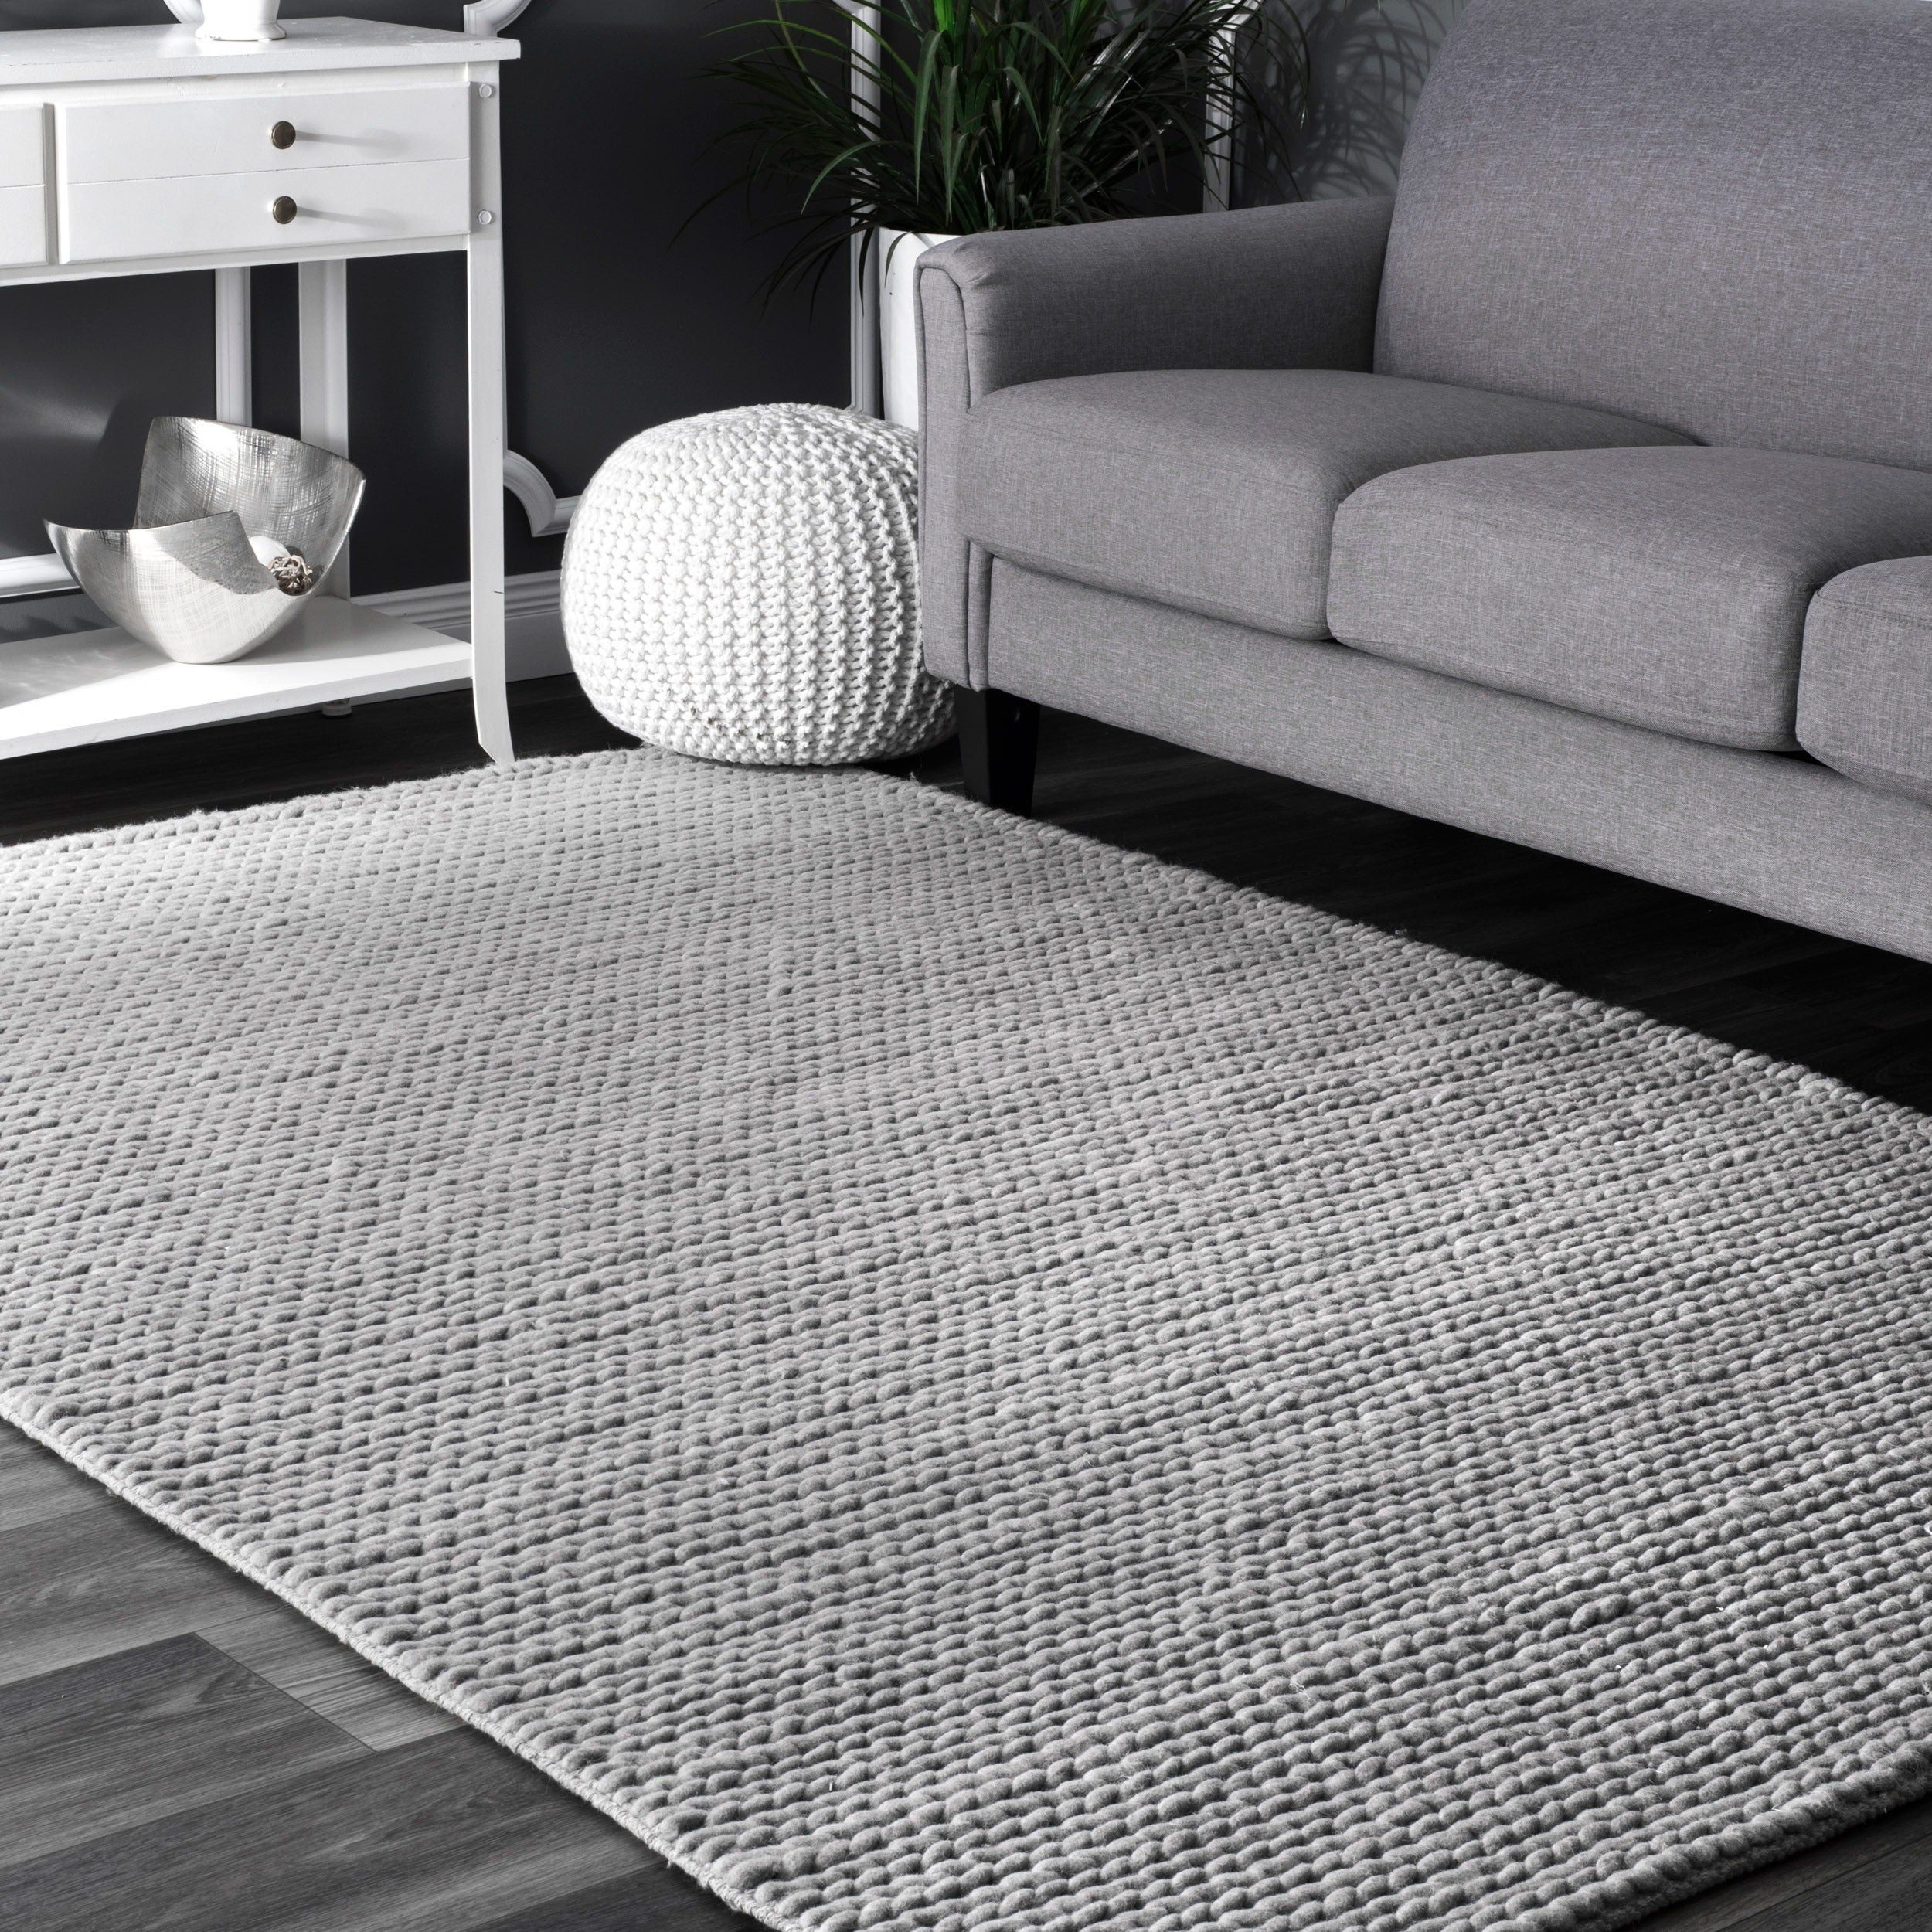 Nuloom Handmade Casual Braided Wool Grey Rug 8 X 10 Free Shipping Today 10708020